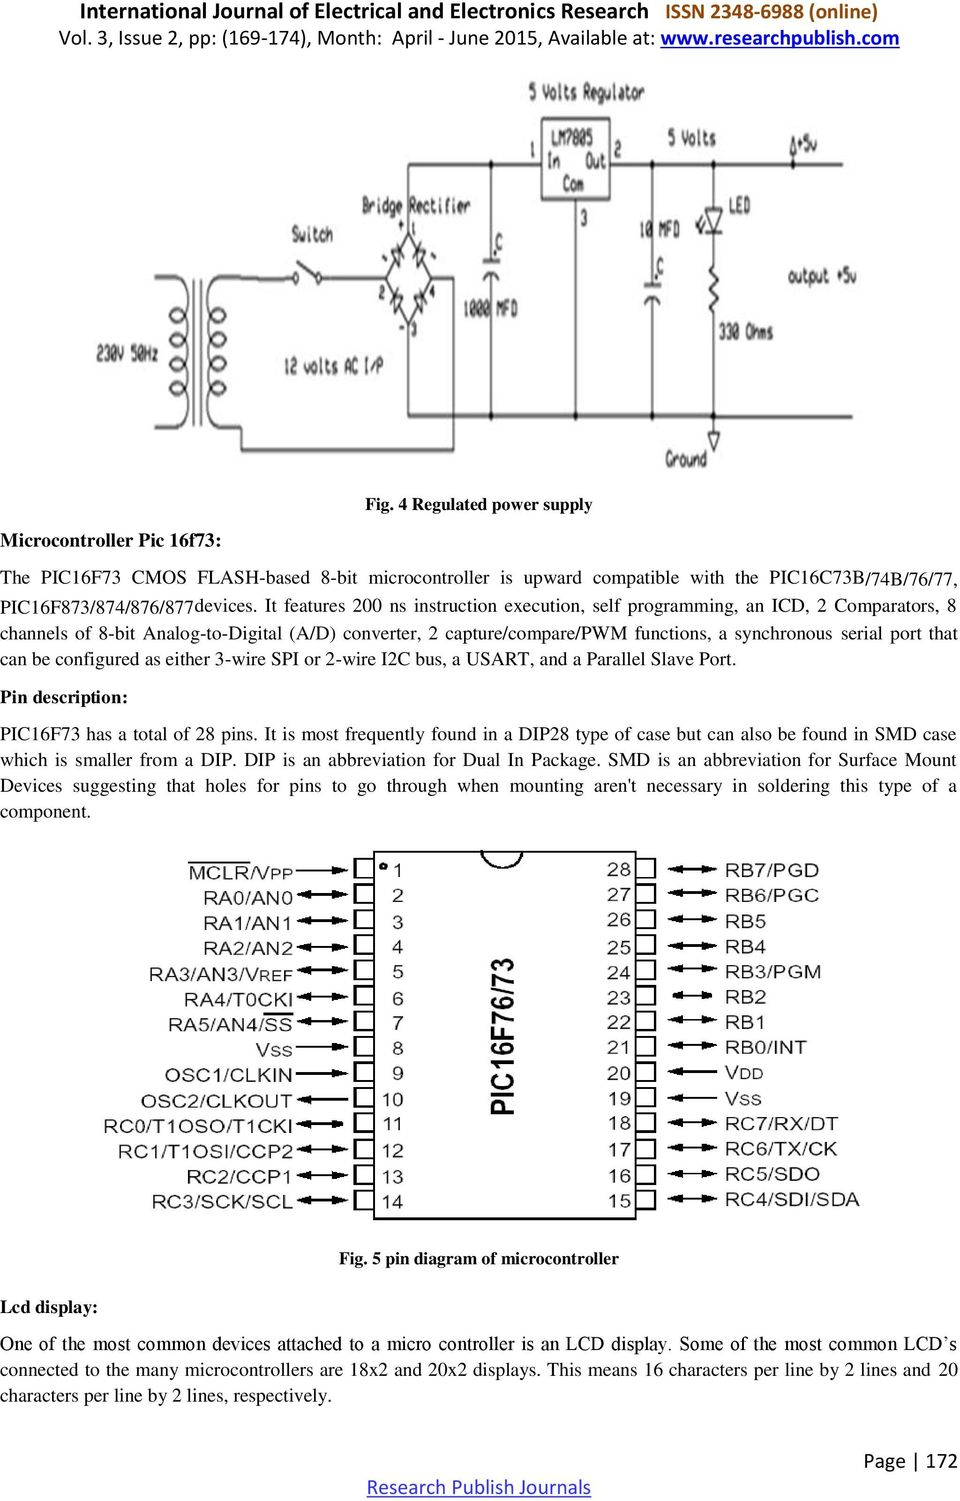 A Module Integrated Isolated Solar Micro Inverter Pdf Pic16f73 Based Temperature Indicator And Controller Best Engineering That Can Be Configured As Either 3 Wire Spi Or 2 I2c Bus